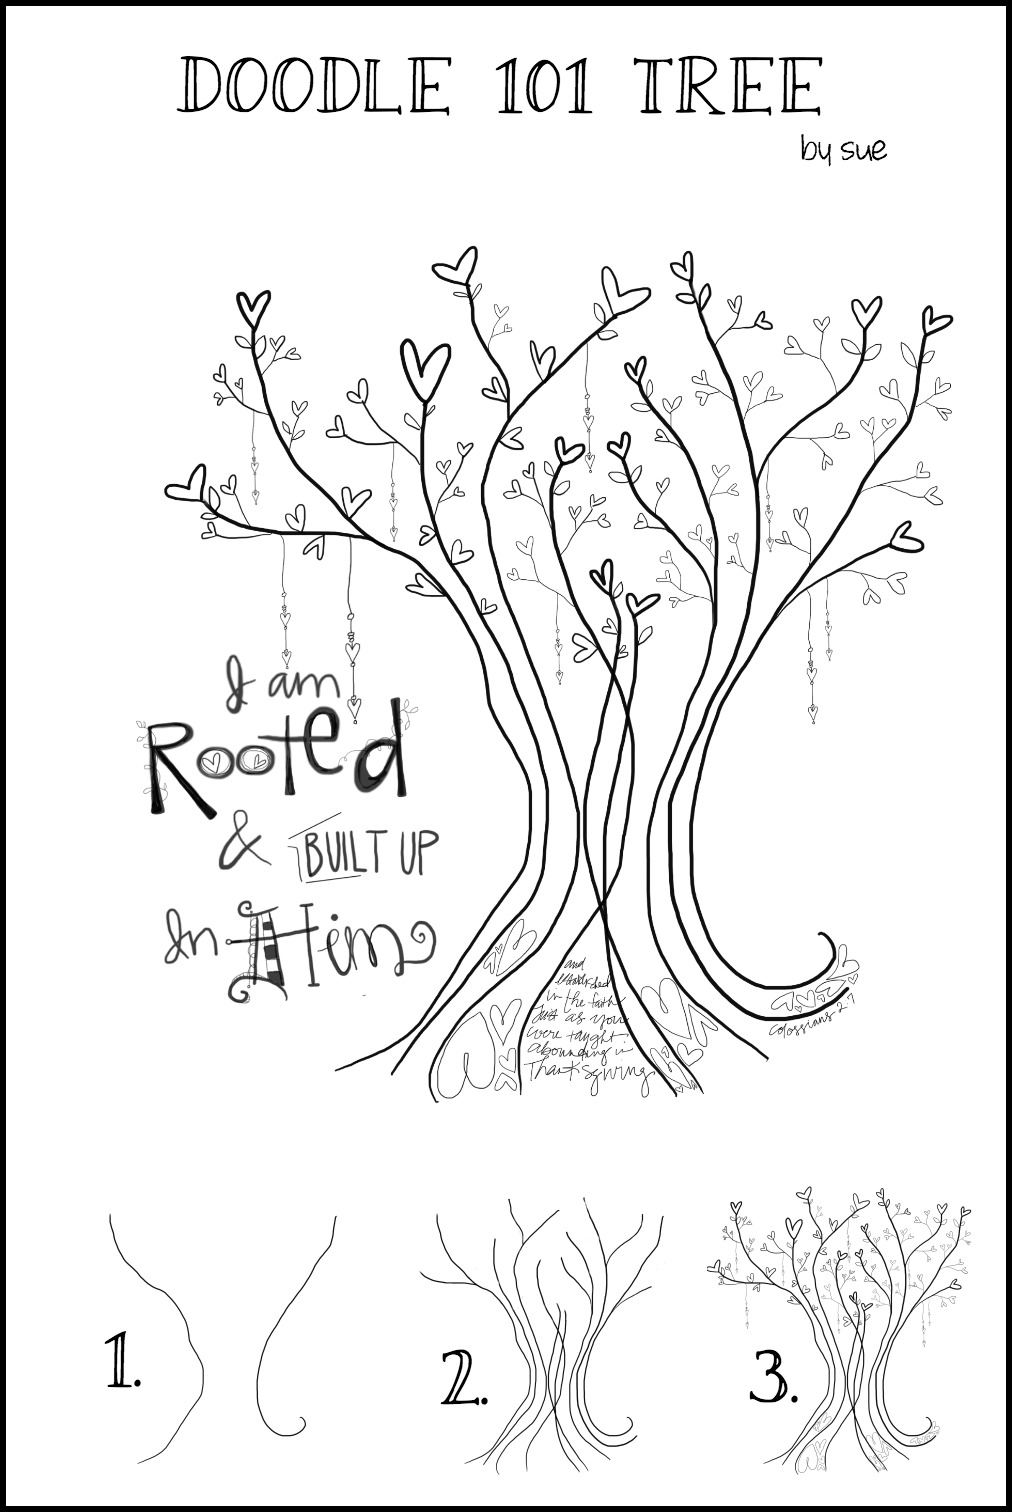 """Doodle 101 """"Rooted in Christ"""""""